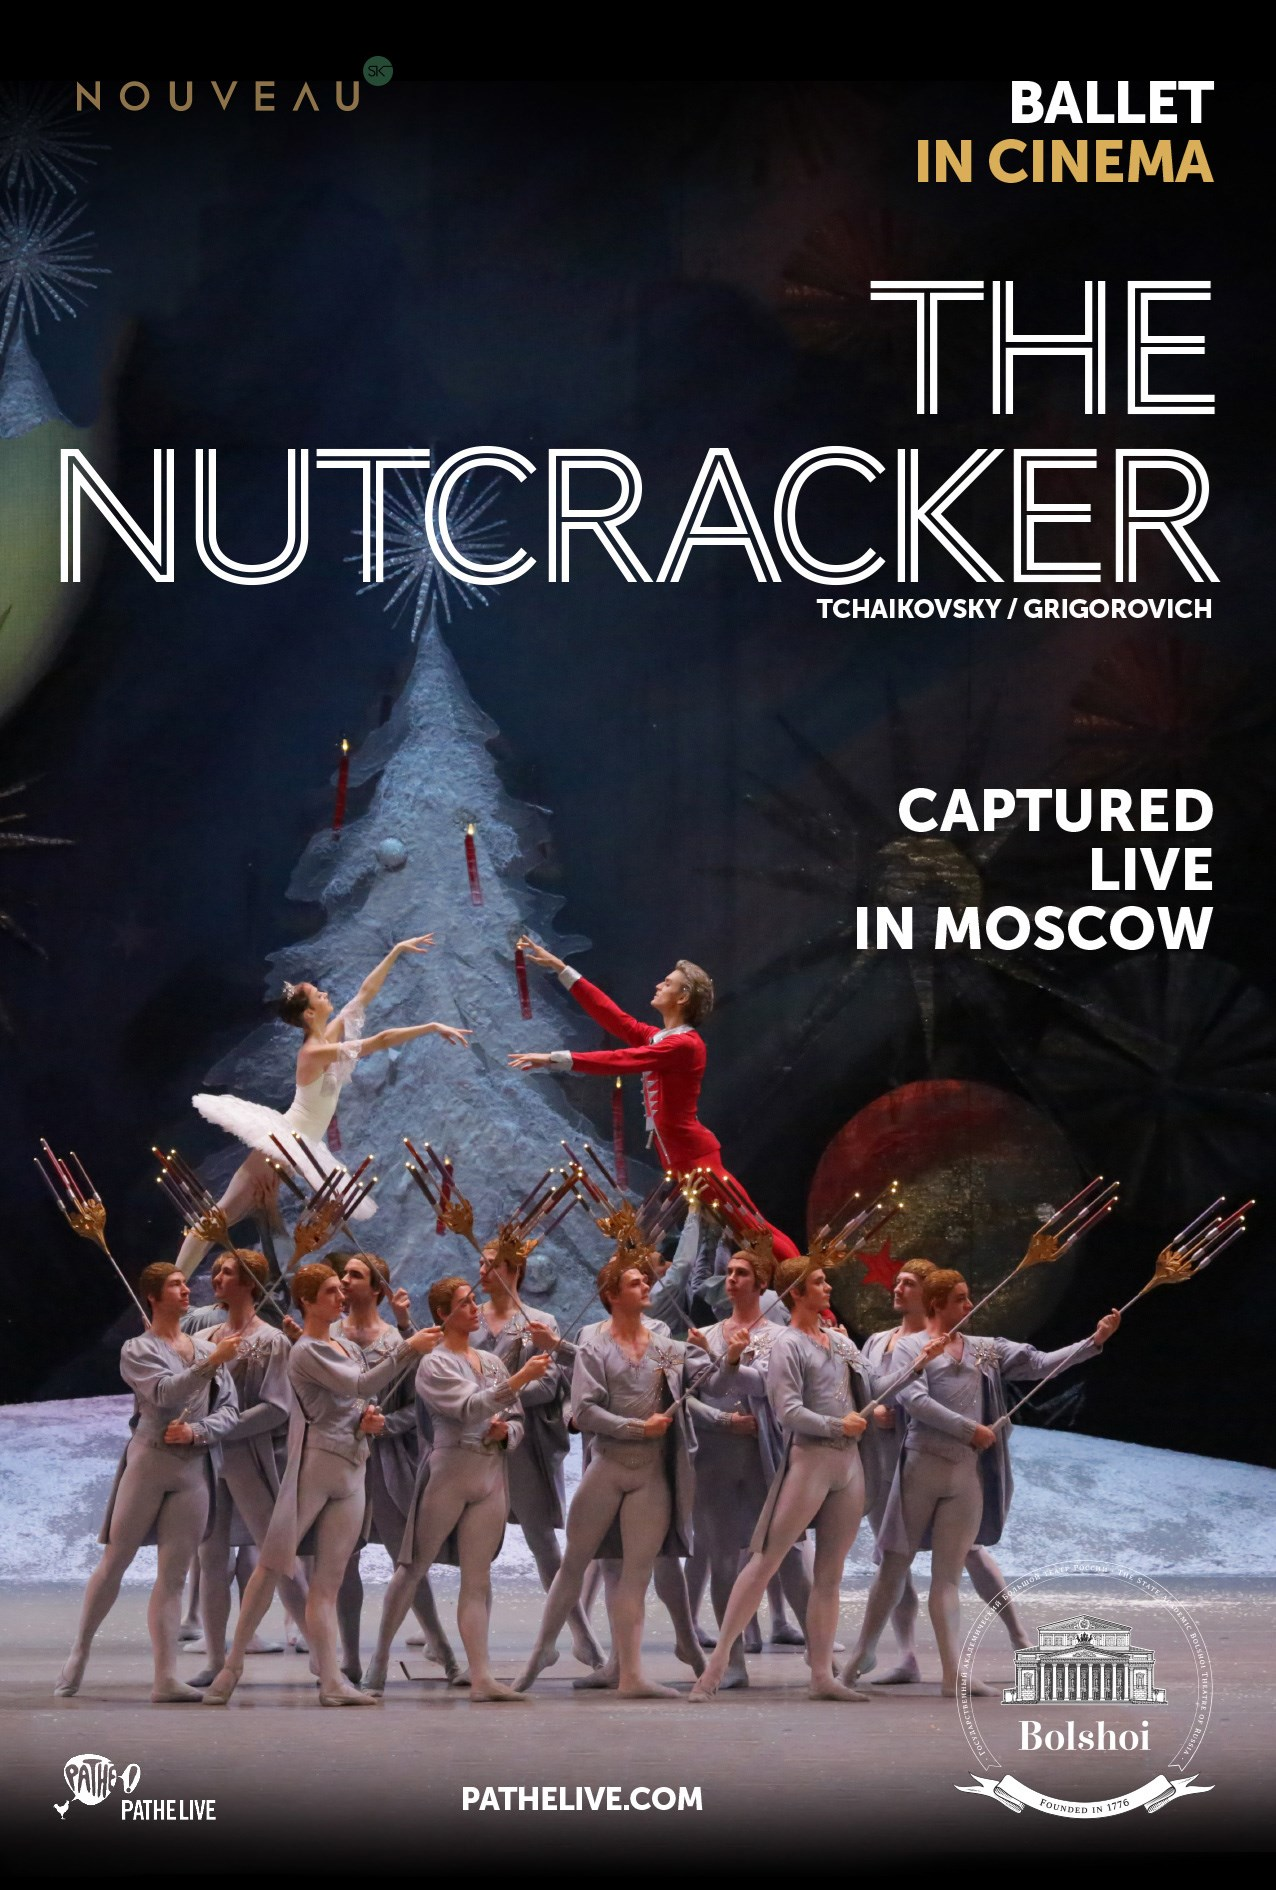 NUTCRACKER, THE (BOLSHOI)